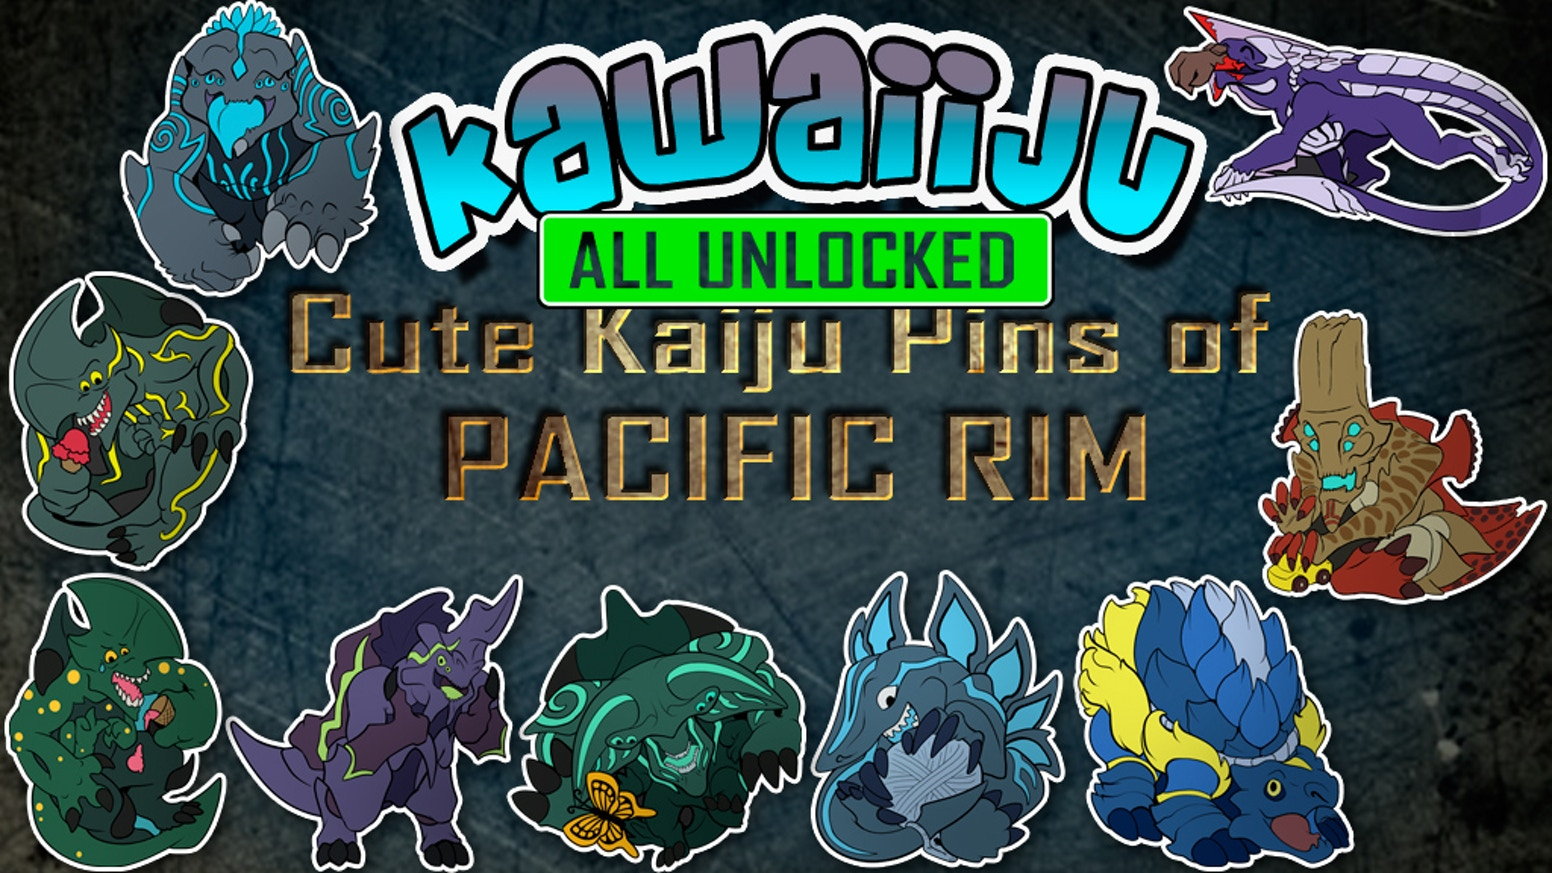 Creating a line of cute (Kawaii) enamel pins based off of the monsters (Kaiju) of Pacific Rim